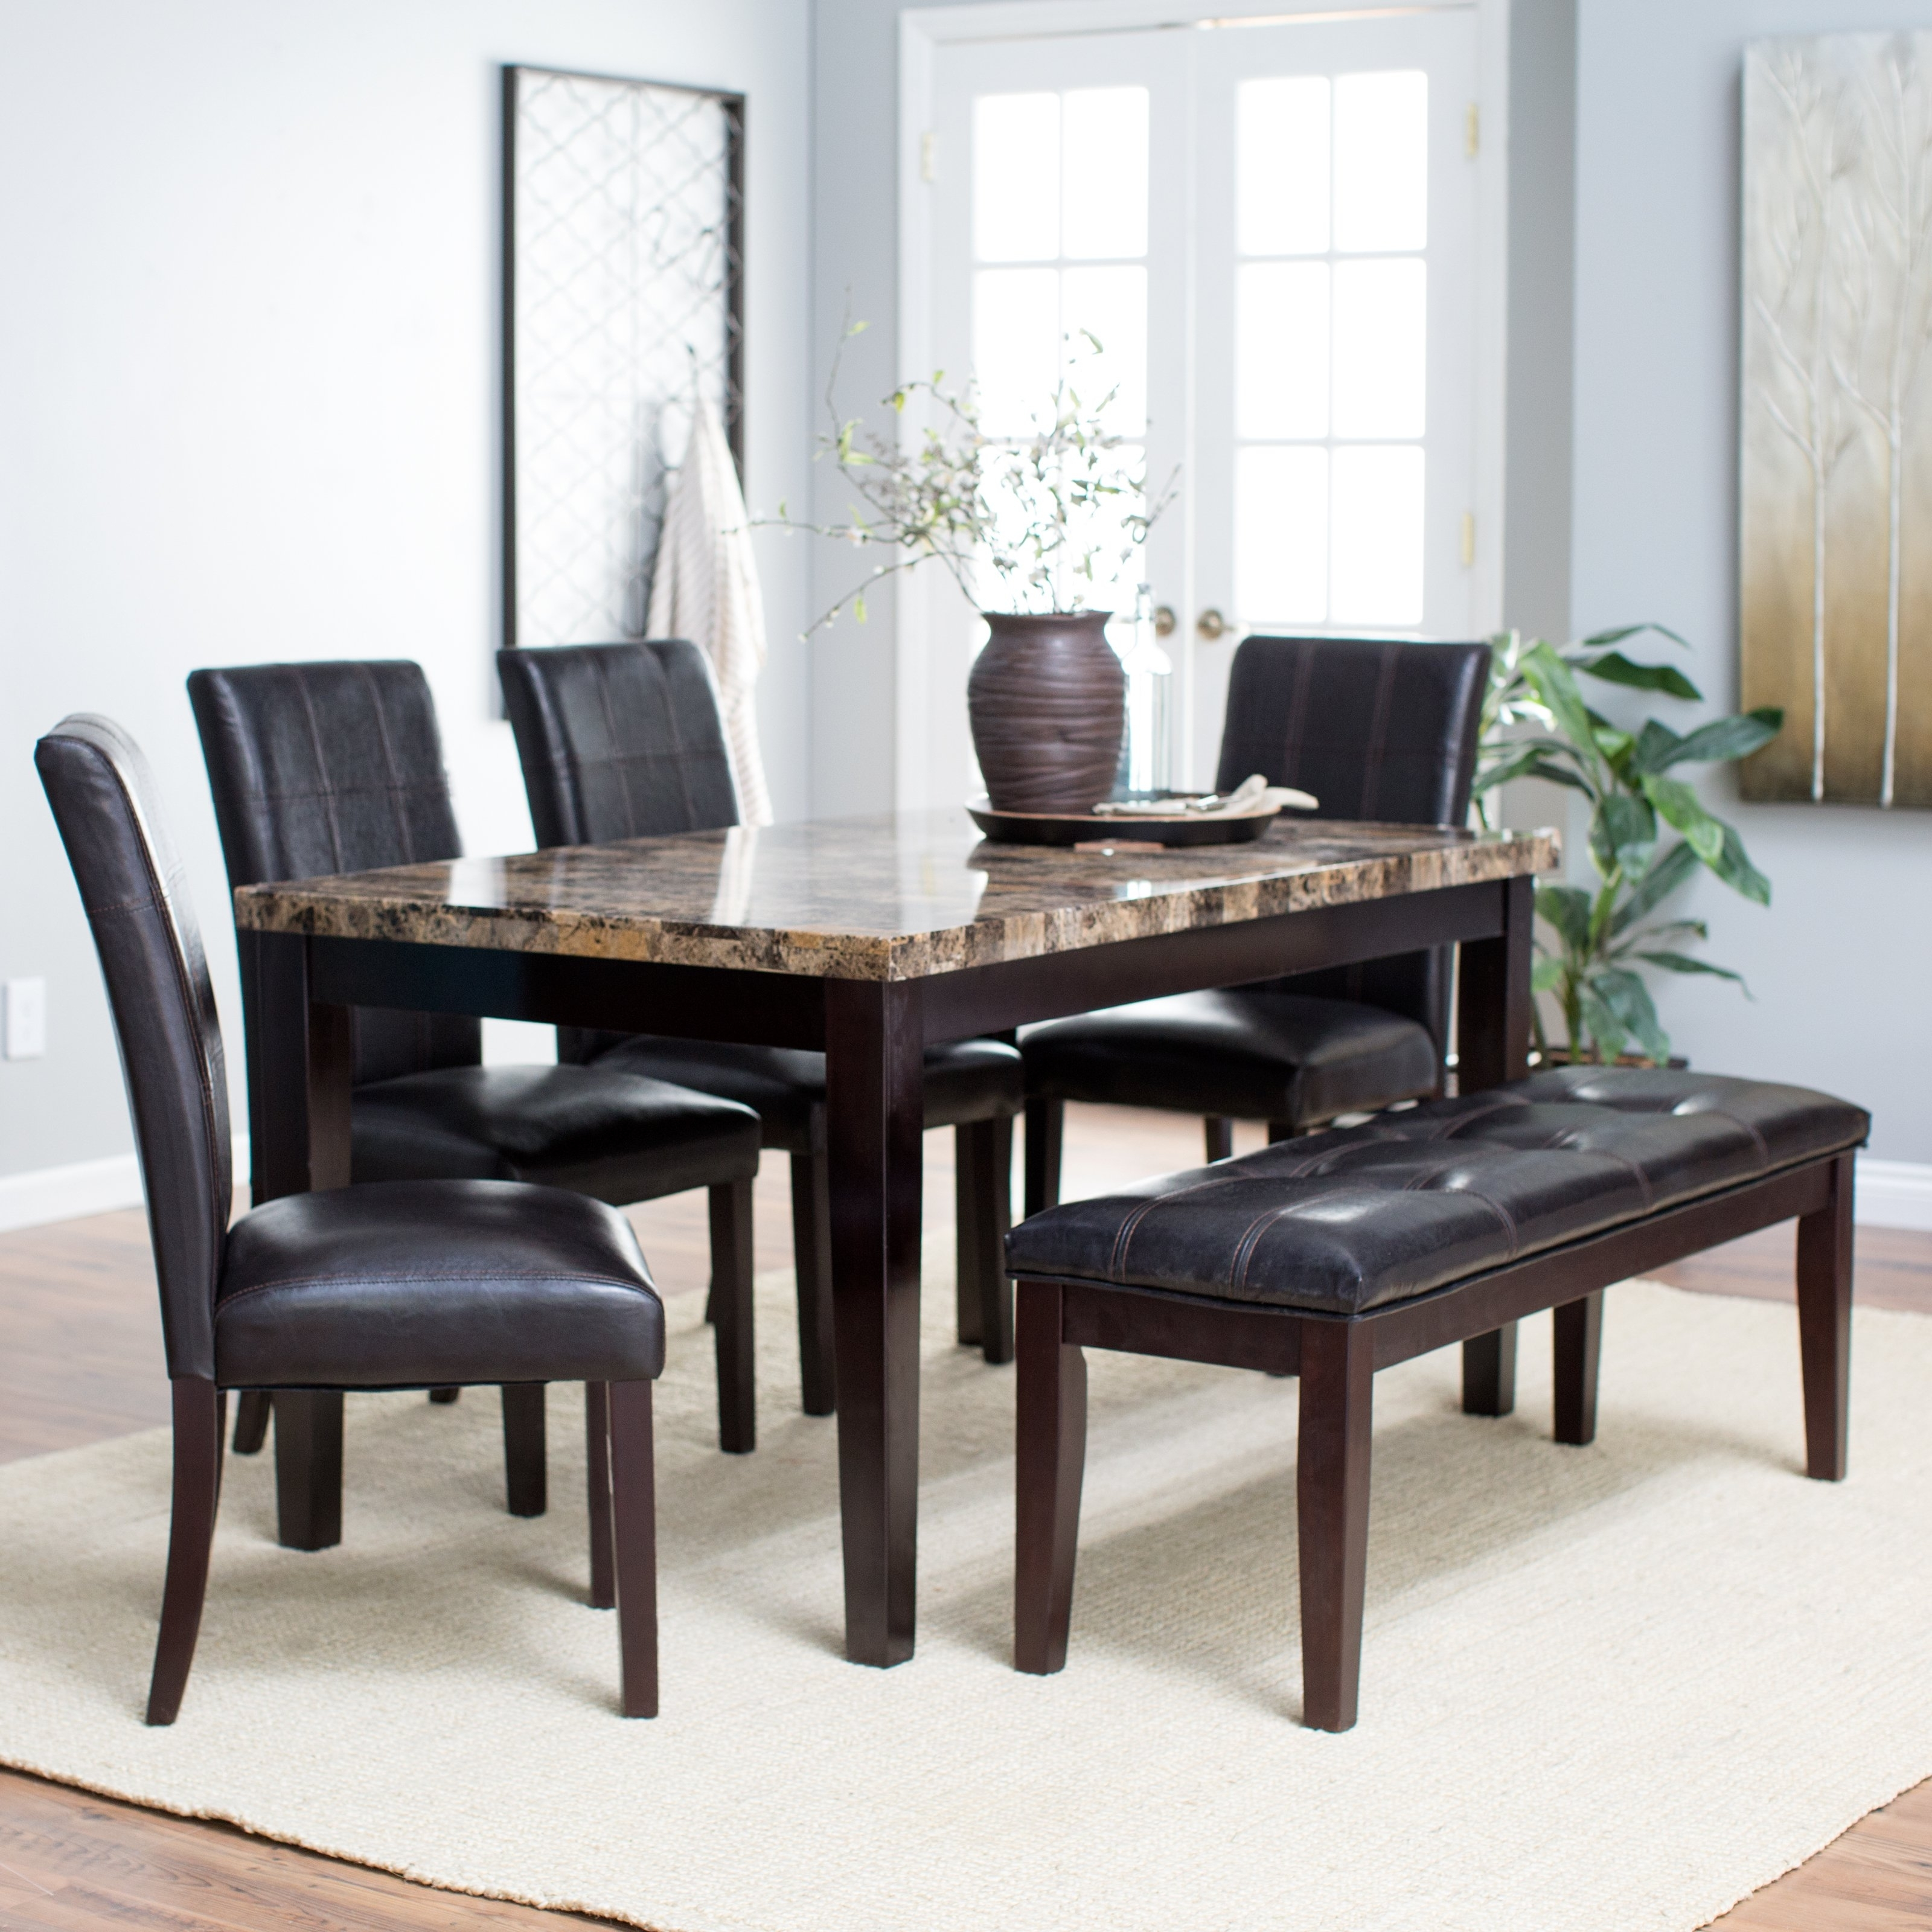 Well Known 6 Seat Dining Table Sets In Types Of Dining Table Sets – Pickndecor (View 15 of 25)